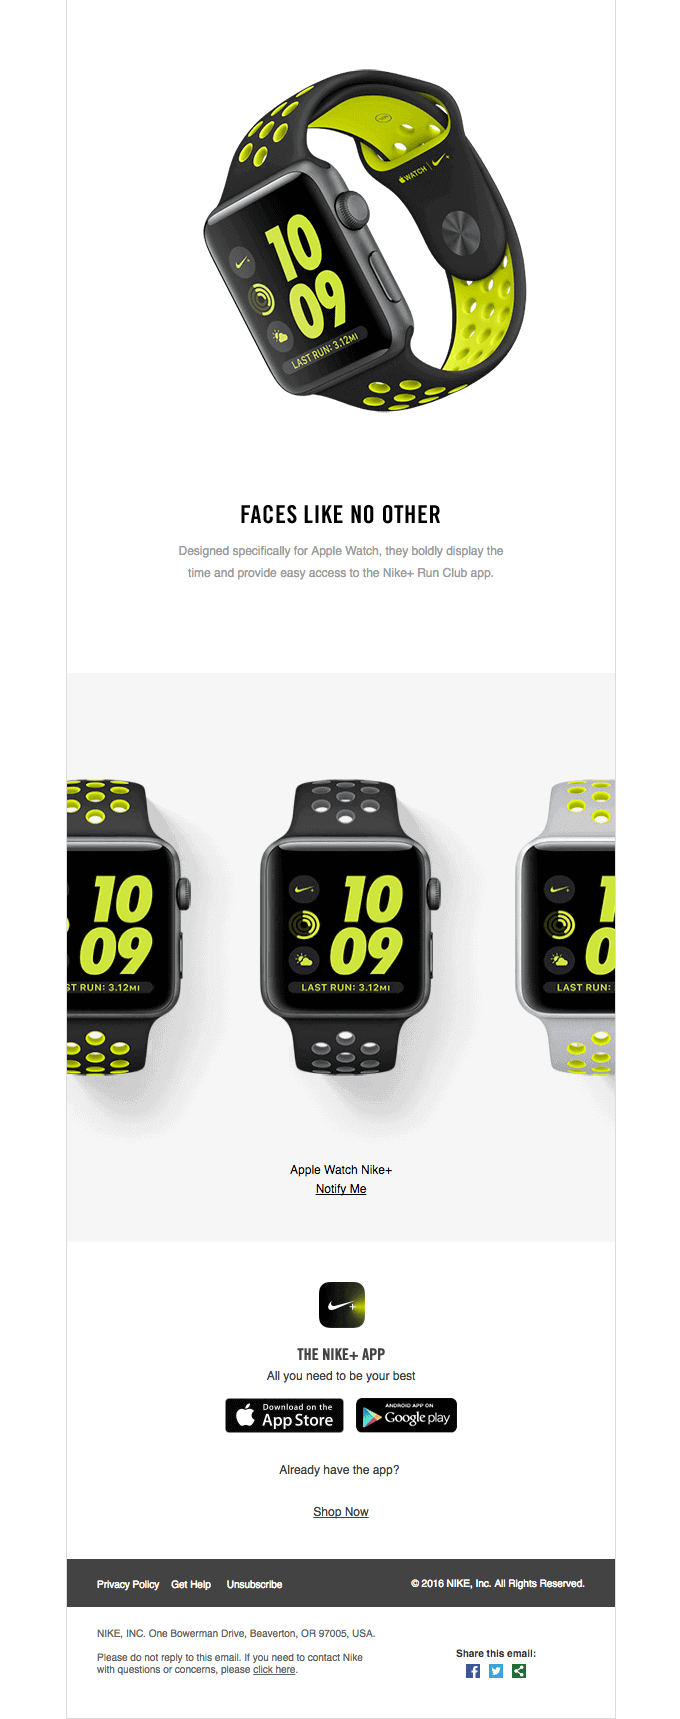 Introducing Apple Watch Nike+ product launch email sample part 2